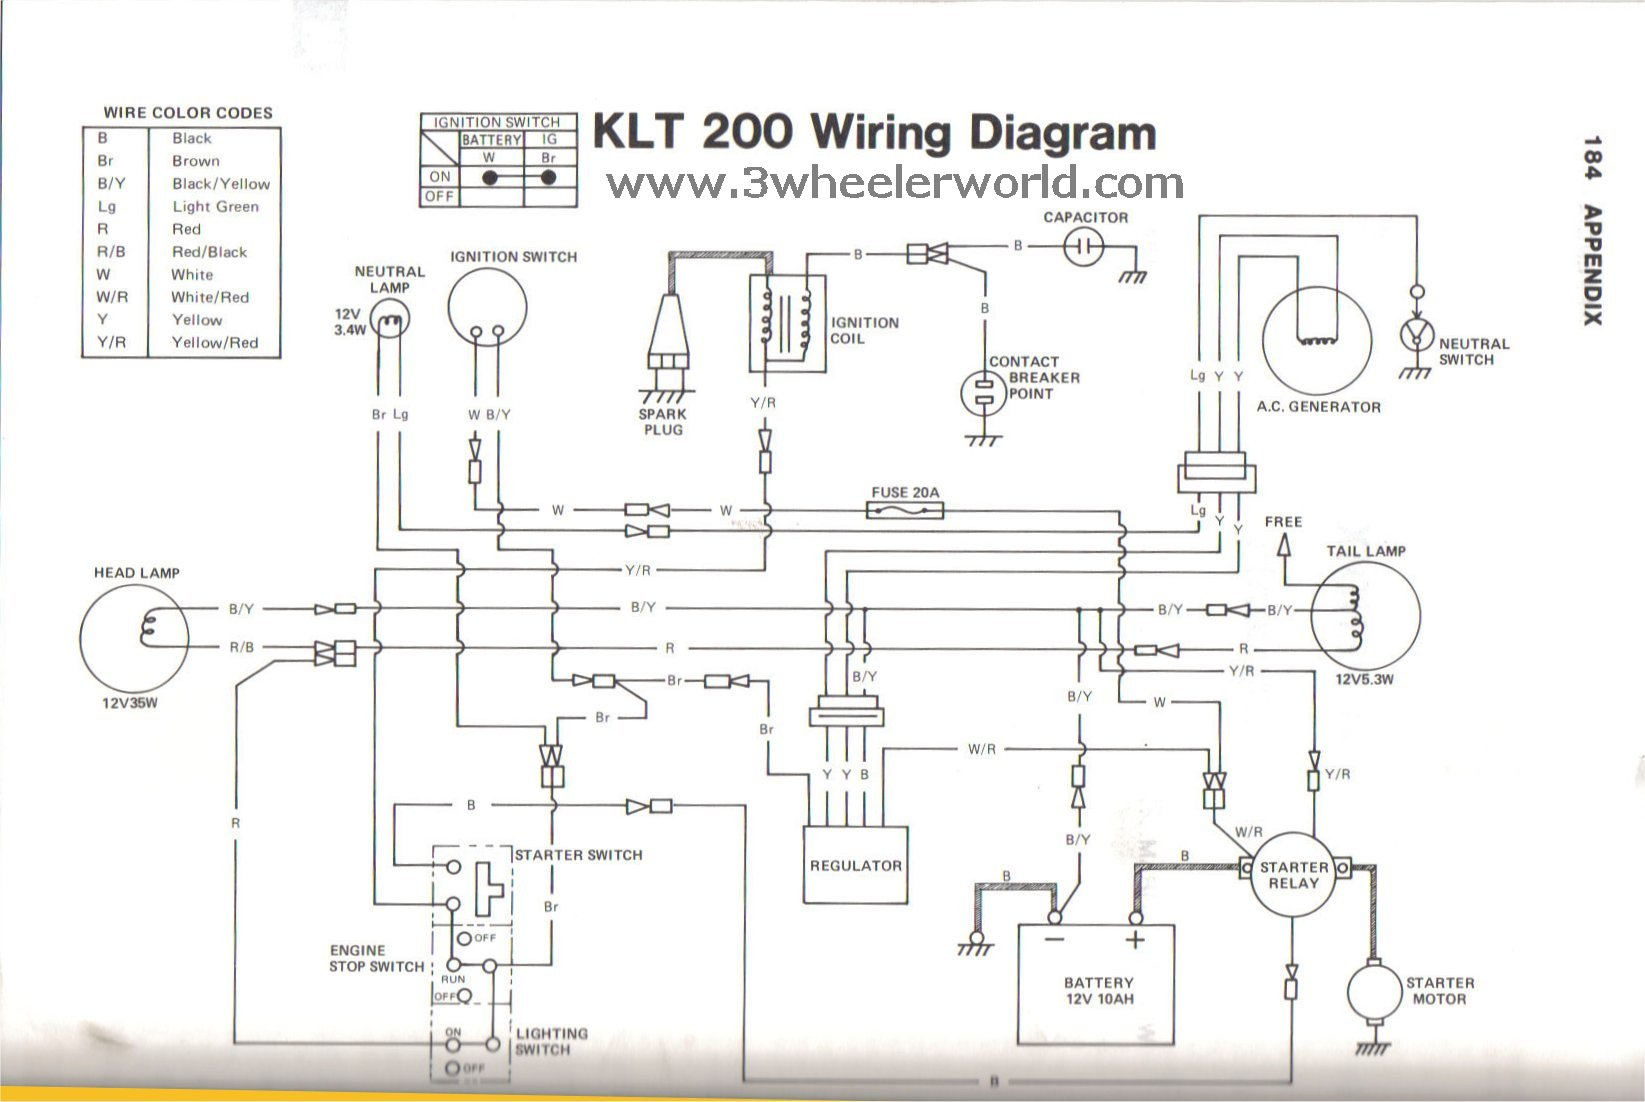 Need Free Wire Diagram For A Kawasaki Klt 200 Atc